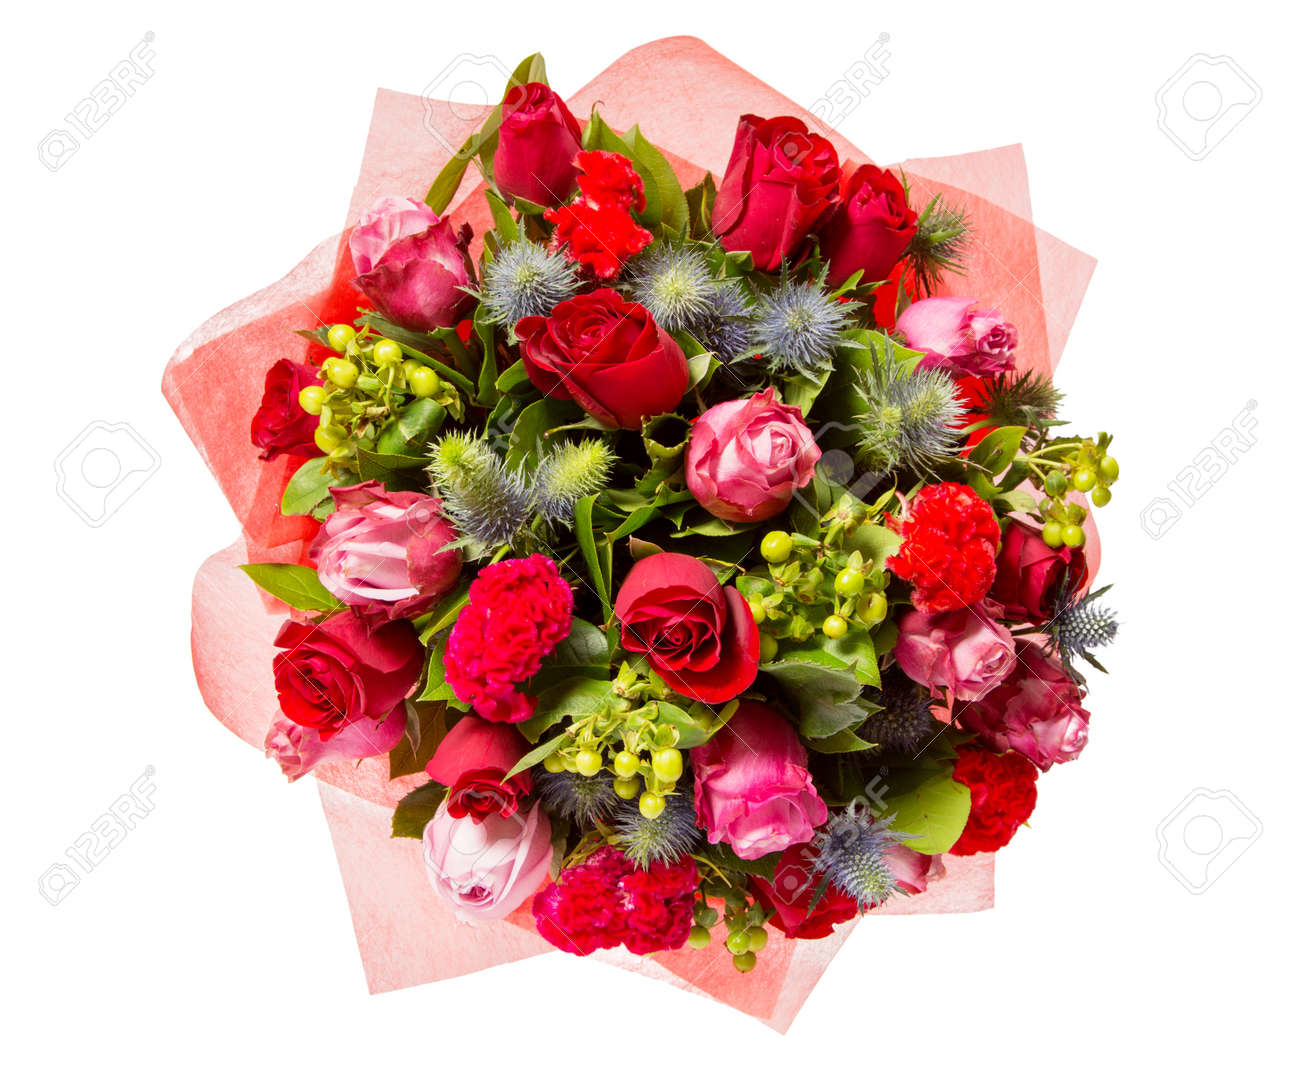 Bouquet of flowers top view isolated on white stock photo picture bouquet of flowers top view isolated on white stock photo 45332605 izmirmasajfo